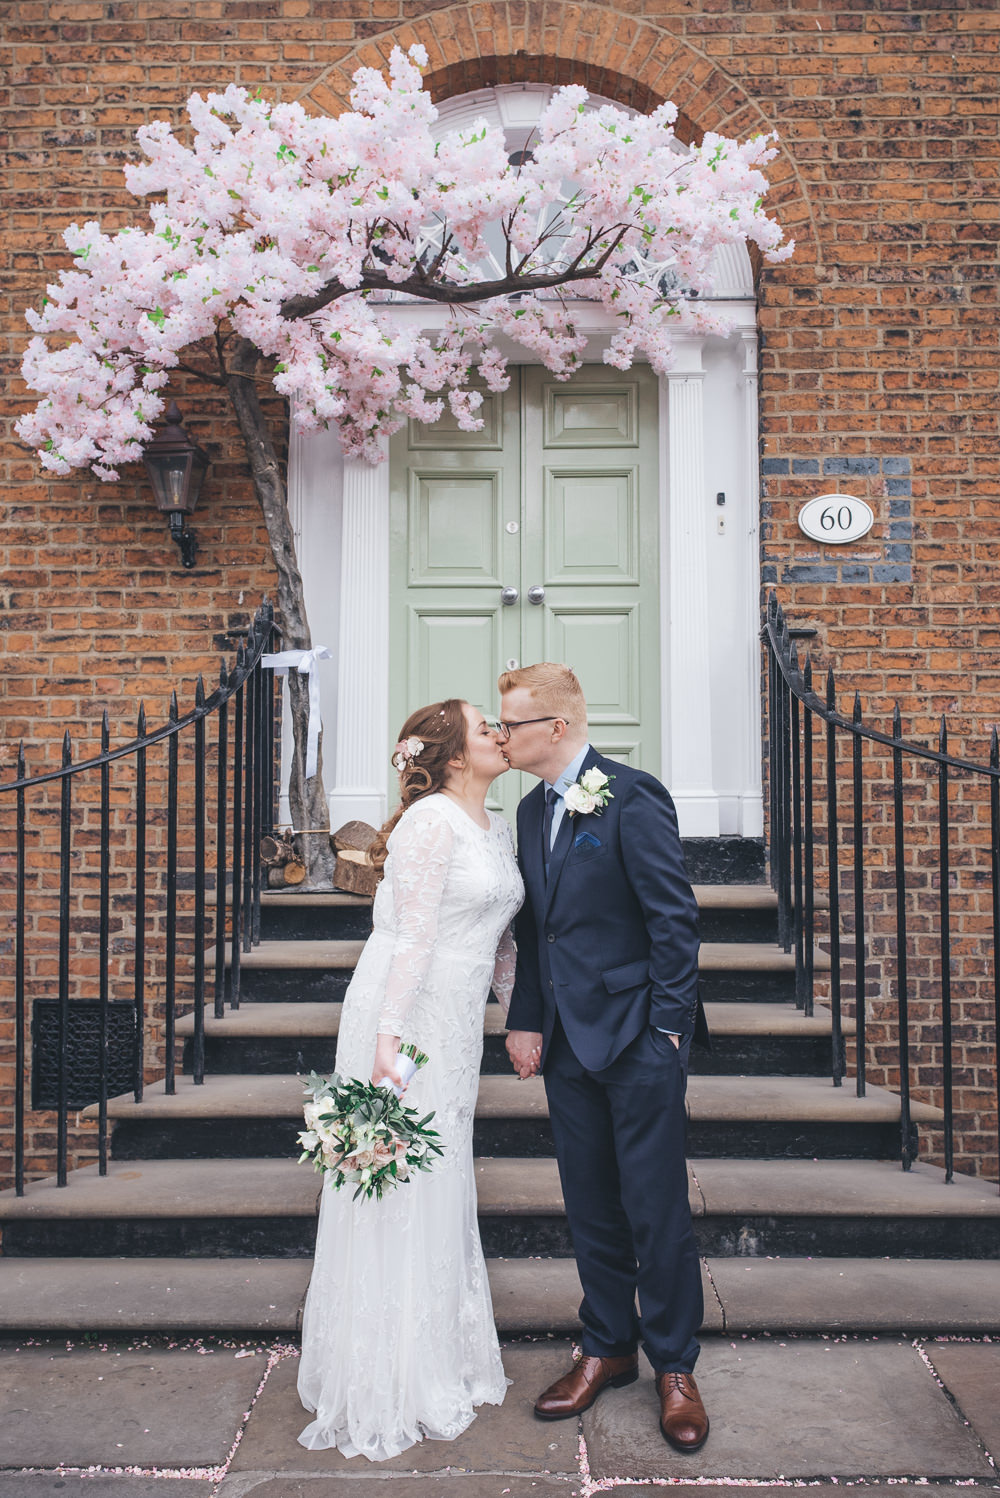 Bride Bridal Lace Long Sleeve Savannah Miller Dress Gown Navy Hugo Boss Groom Pink Rose Bouquet Blossom Tree 60 Hope Street Wedding Lisa Howard Photography